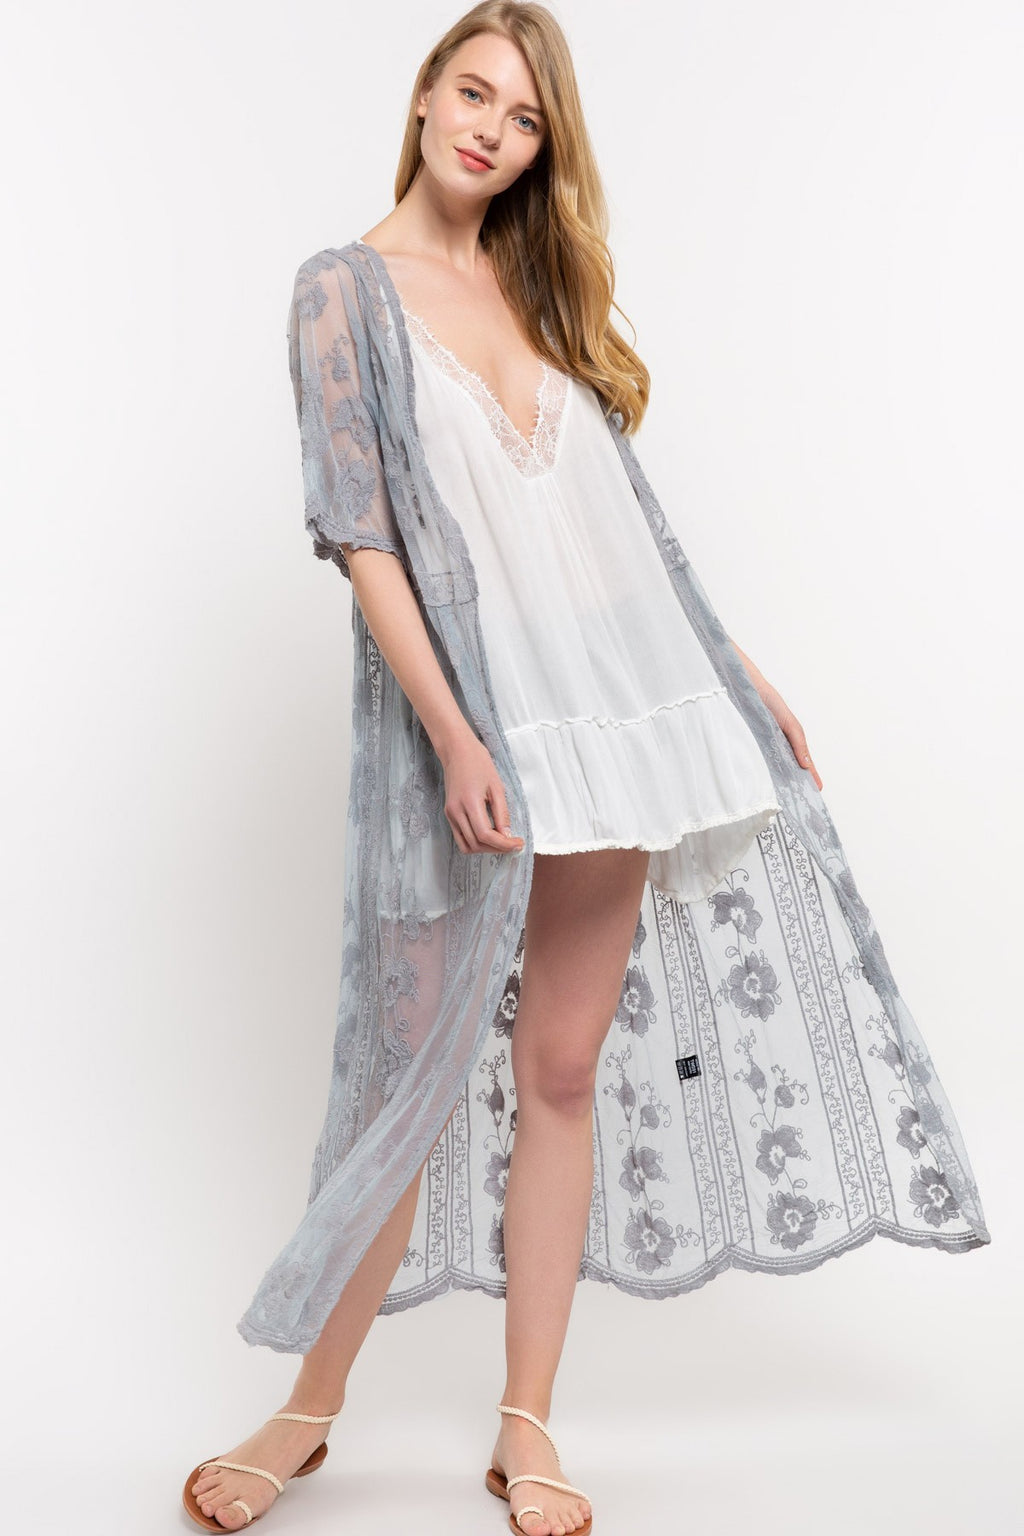 Sale! Lace Sheer Embroidered Kimono - Sswing Lifestyle Company